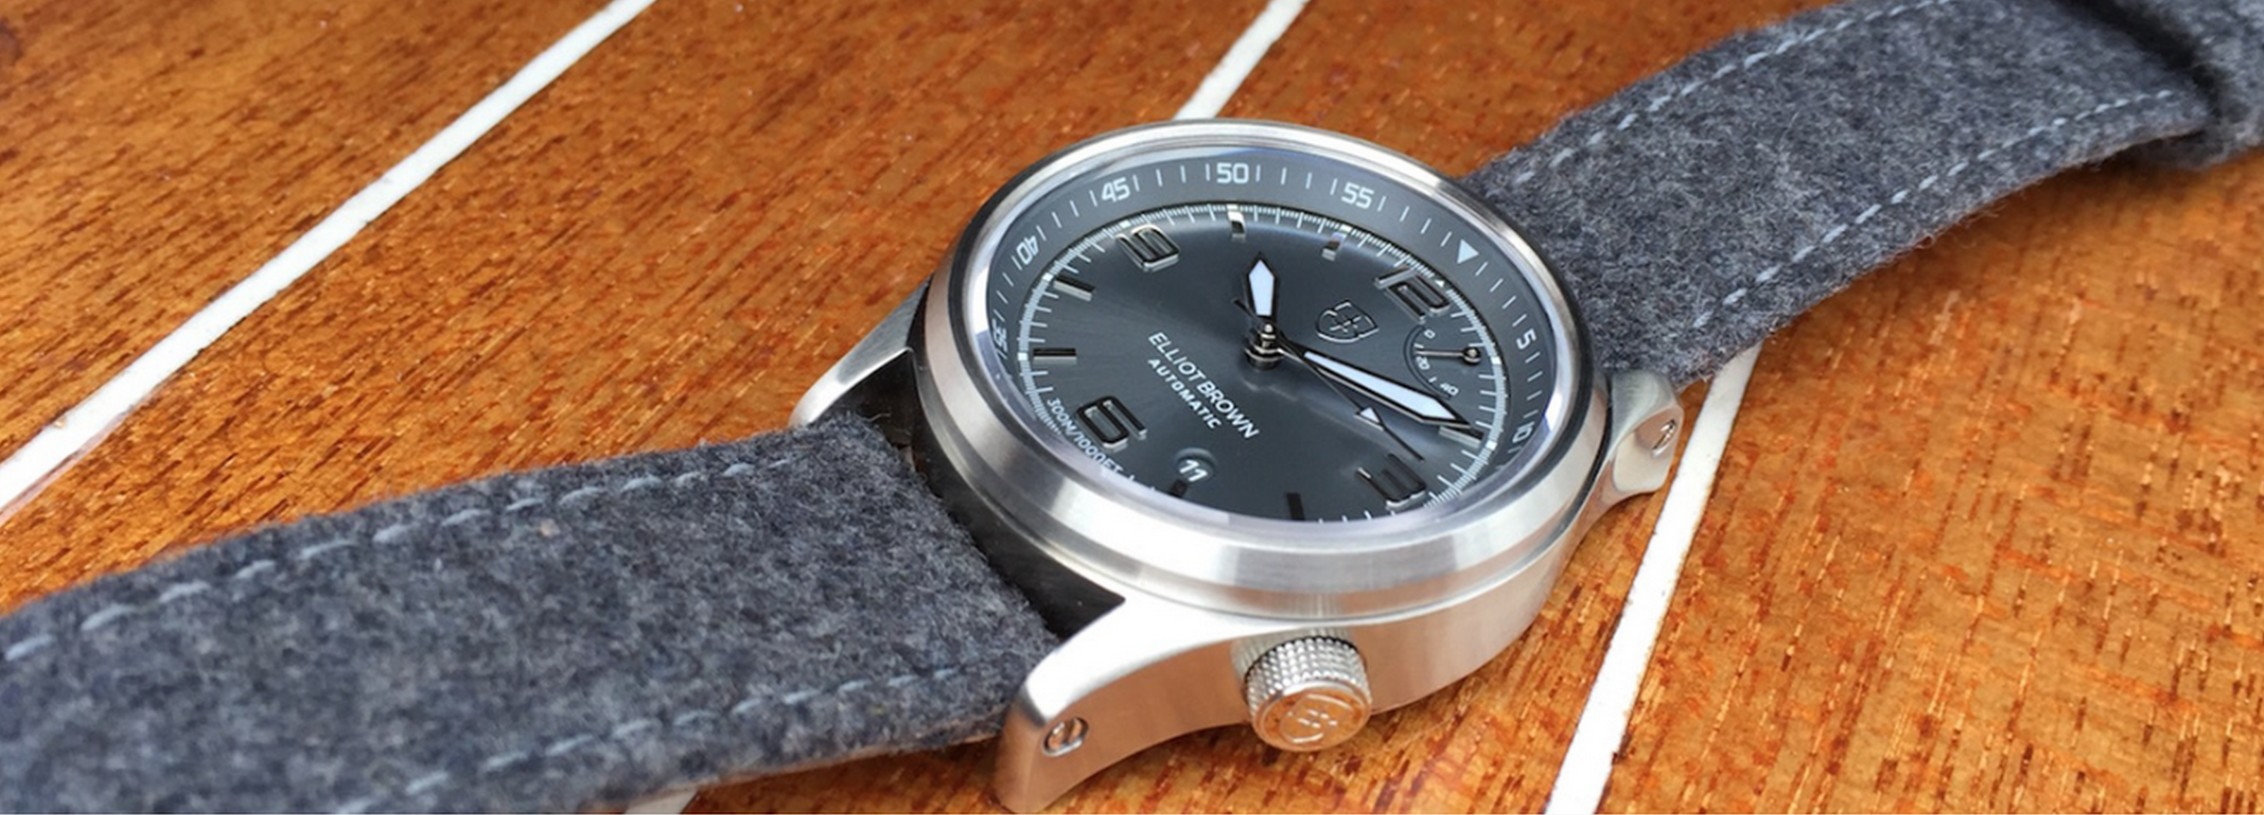 Elliot Brown Presents The Tyneham Watch